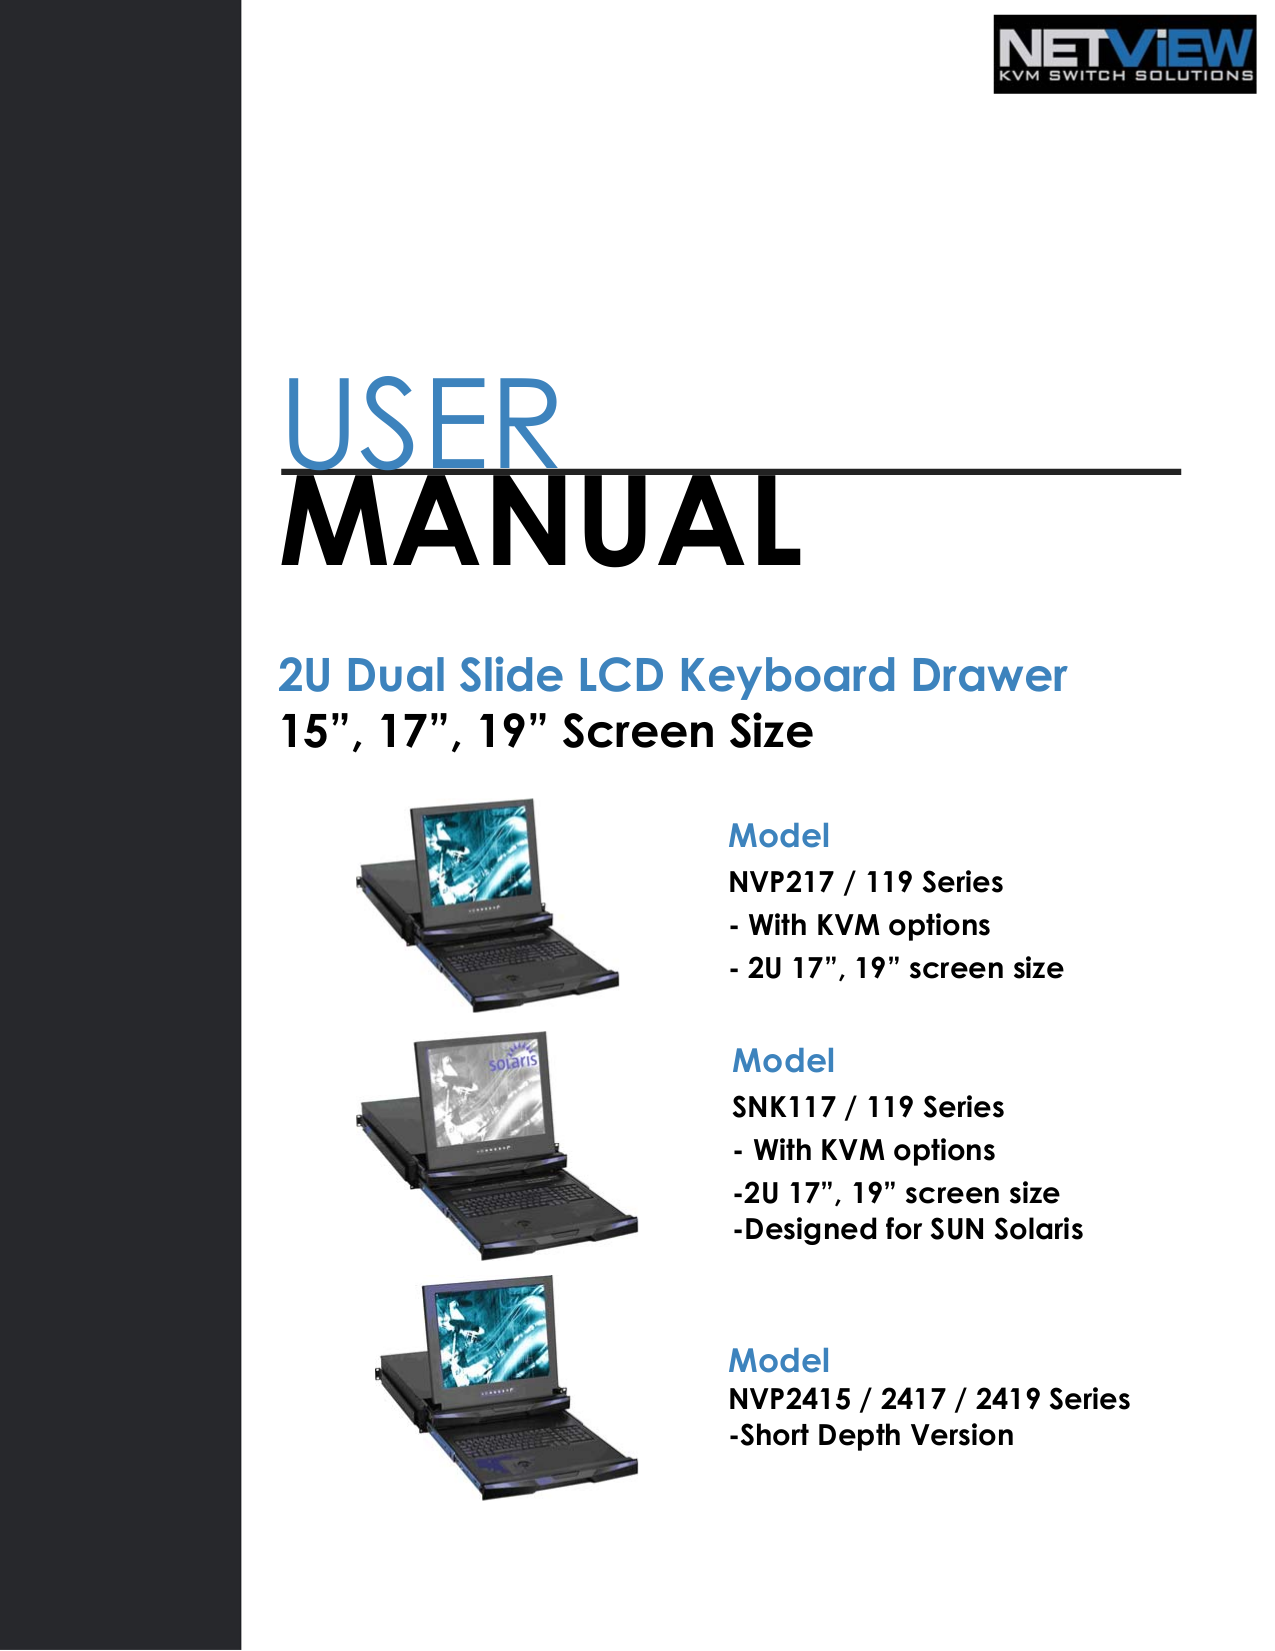 pdf for I-Tech Other RKP2415-1602 Keyboard Drawers manual